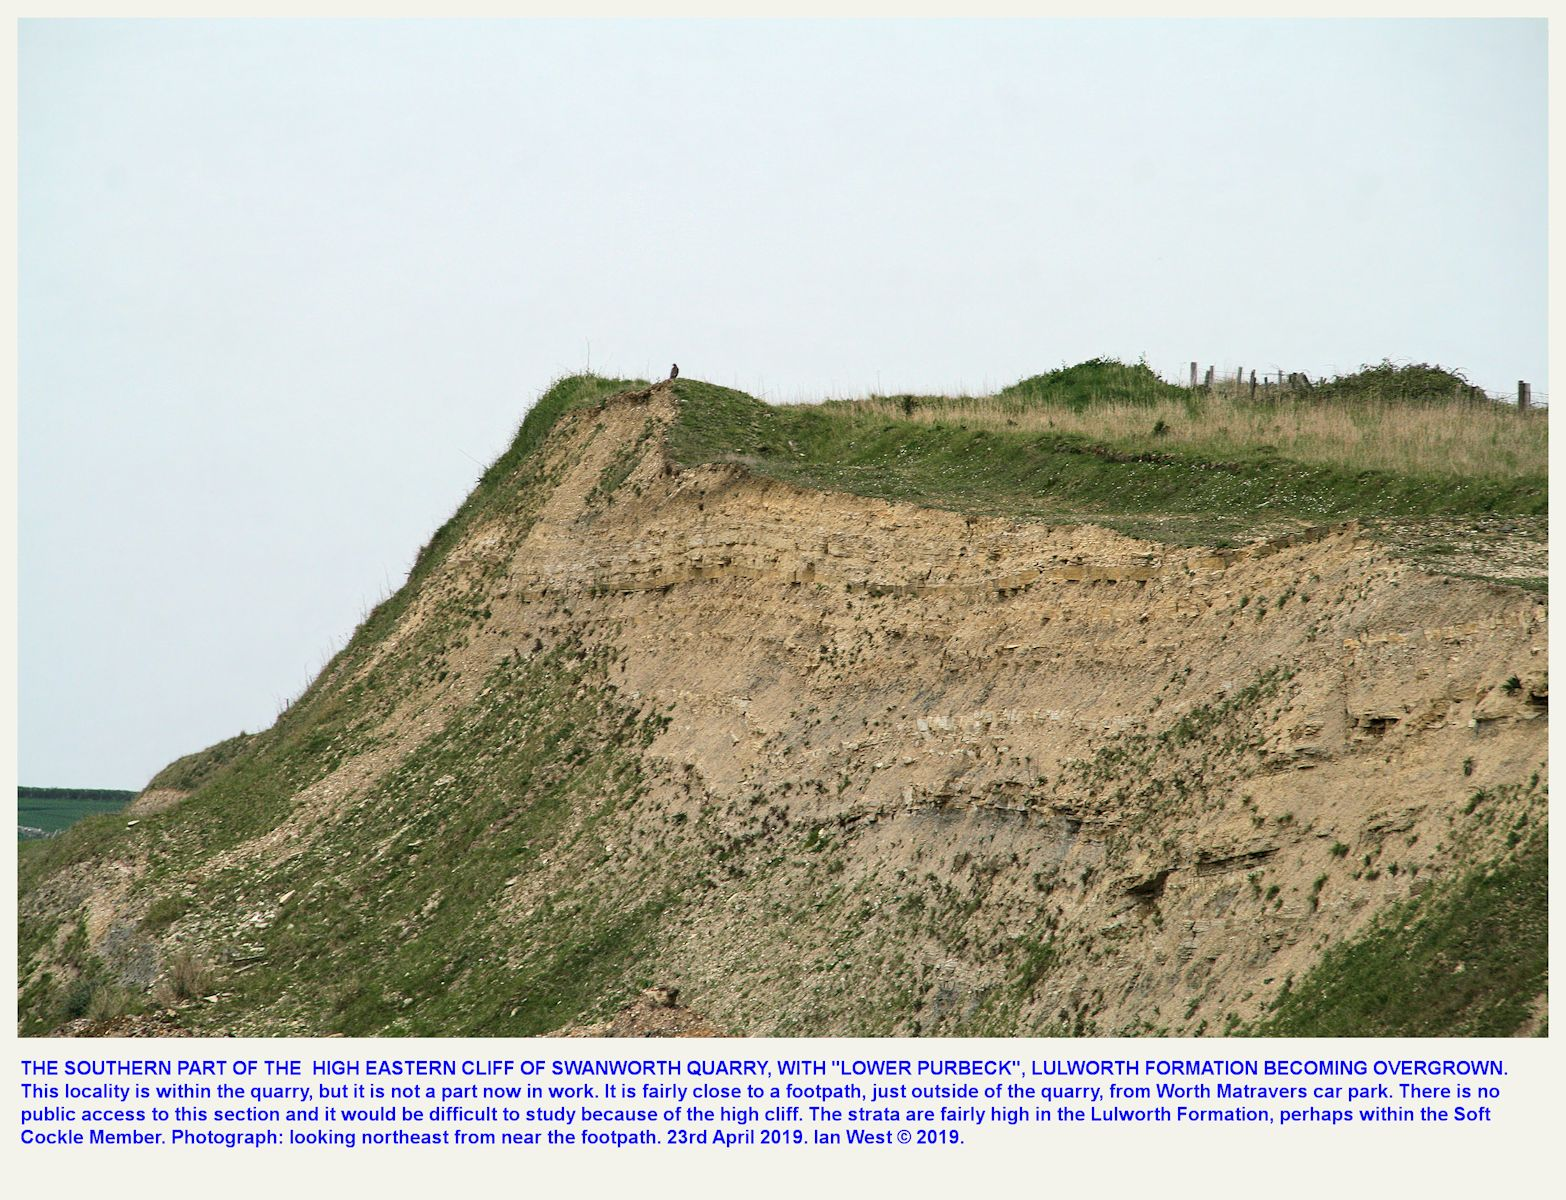 A promontory of nearly horizontal Purbeck strata up through the Cypris Freestones at the southern part of the eastern wall of Swanworth Quarry, as seen on the 23rd April 2019